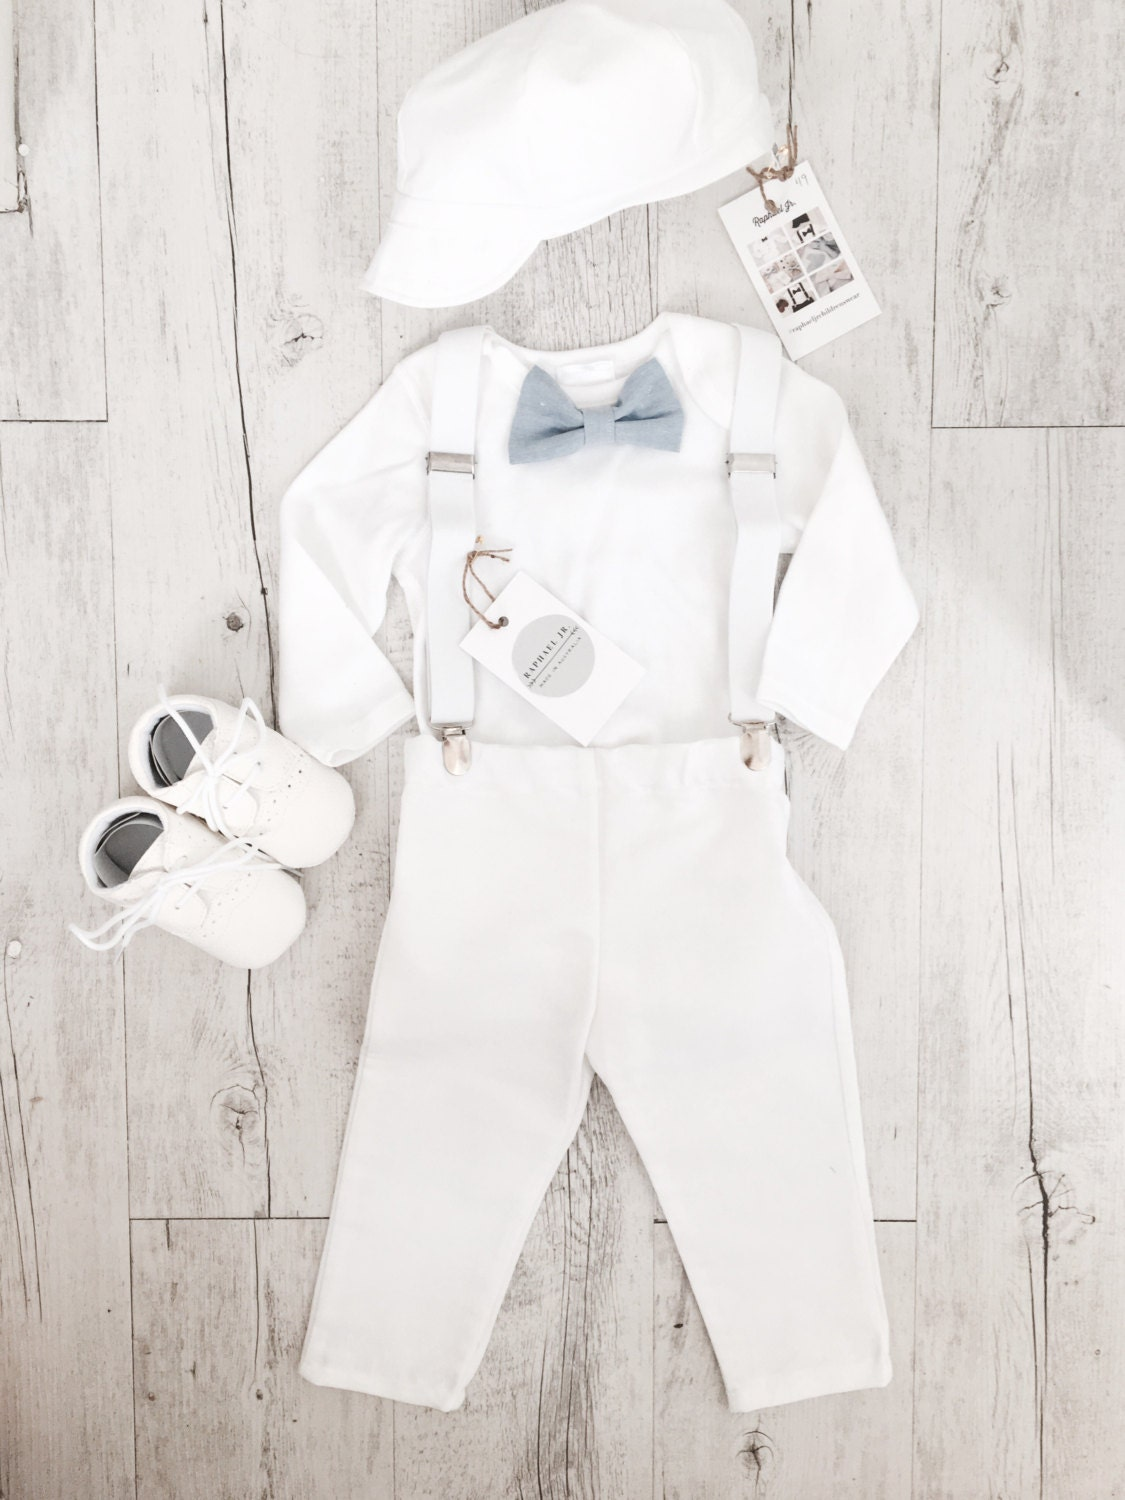 boys' suspenders - up to 70% off. Well, darn. This item just sold out. Select notify me & we'll tell you when it's back in stock.